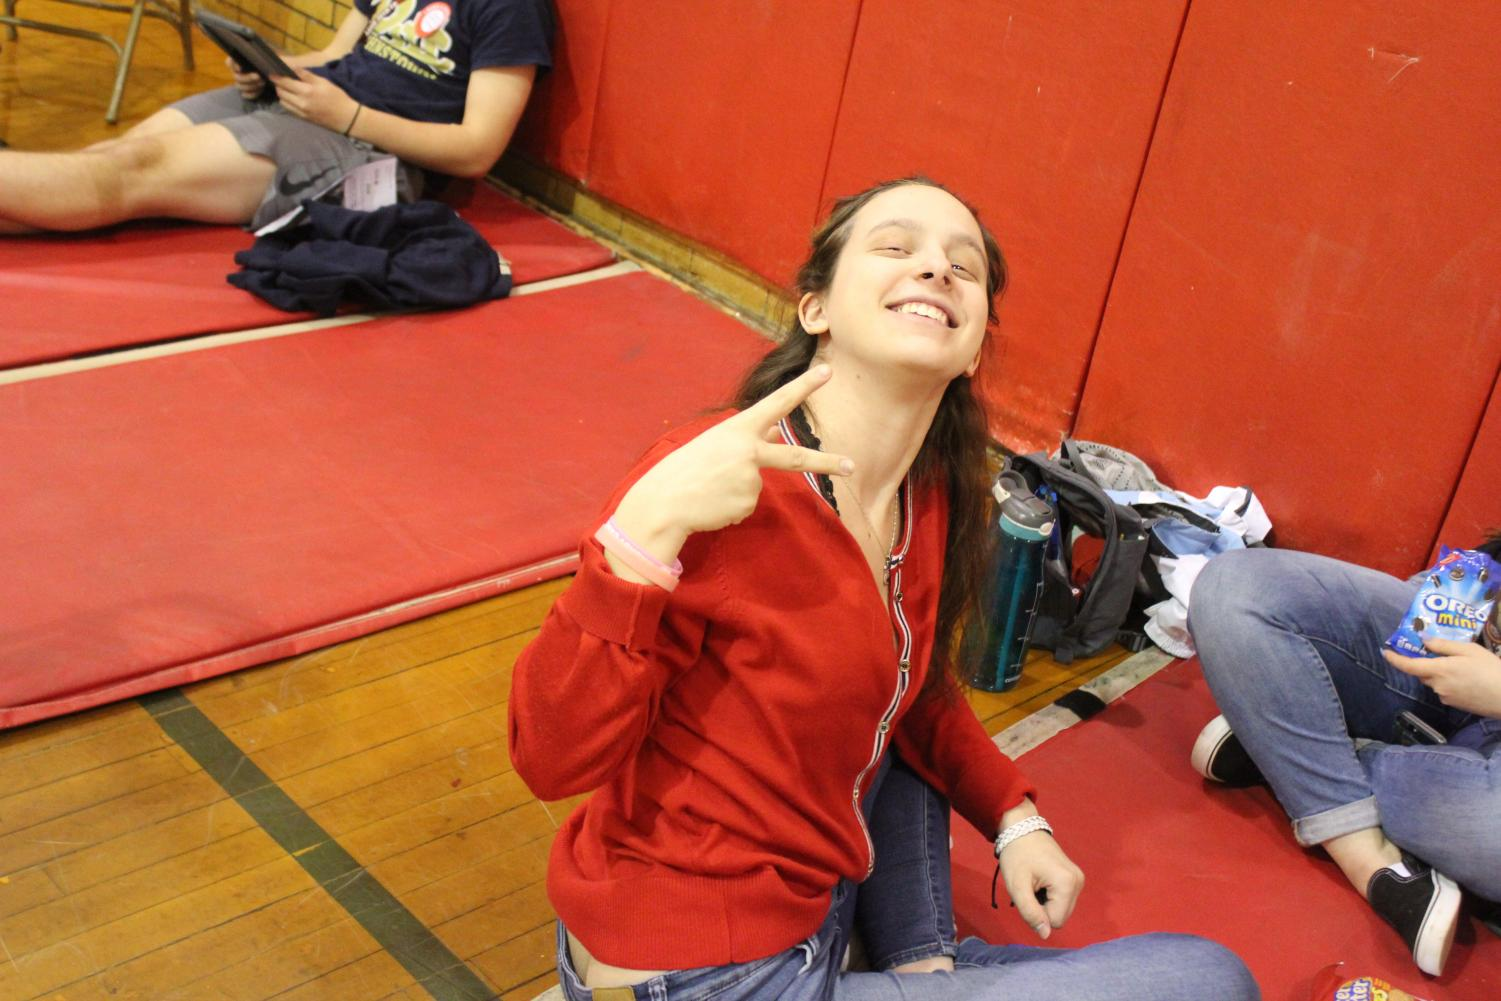 Senior+Kristine+Kyle+gives+out+a+peace+sign+while+waiting+to+get+called+to+donate+her+blood.+